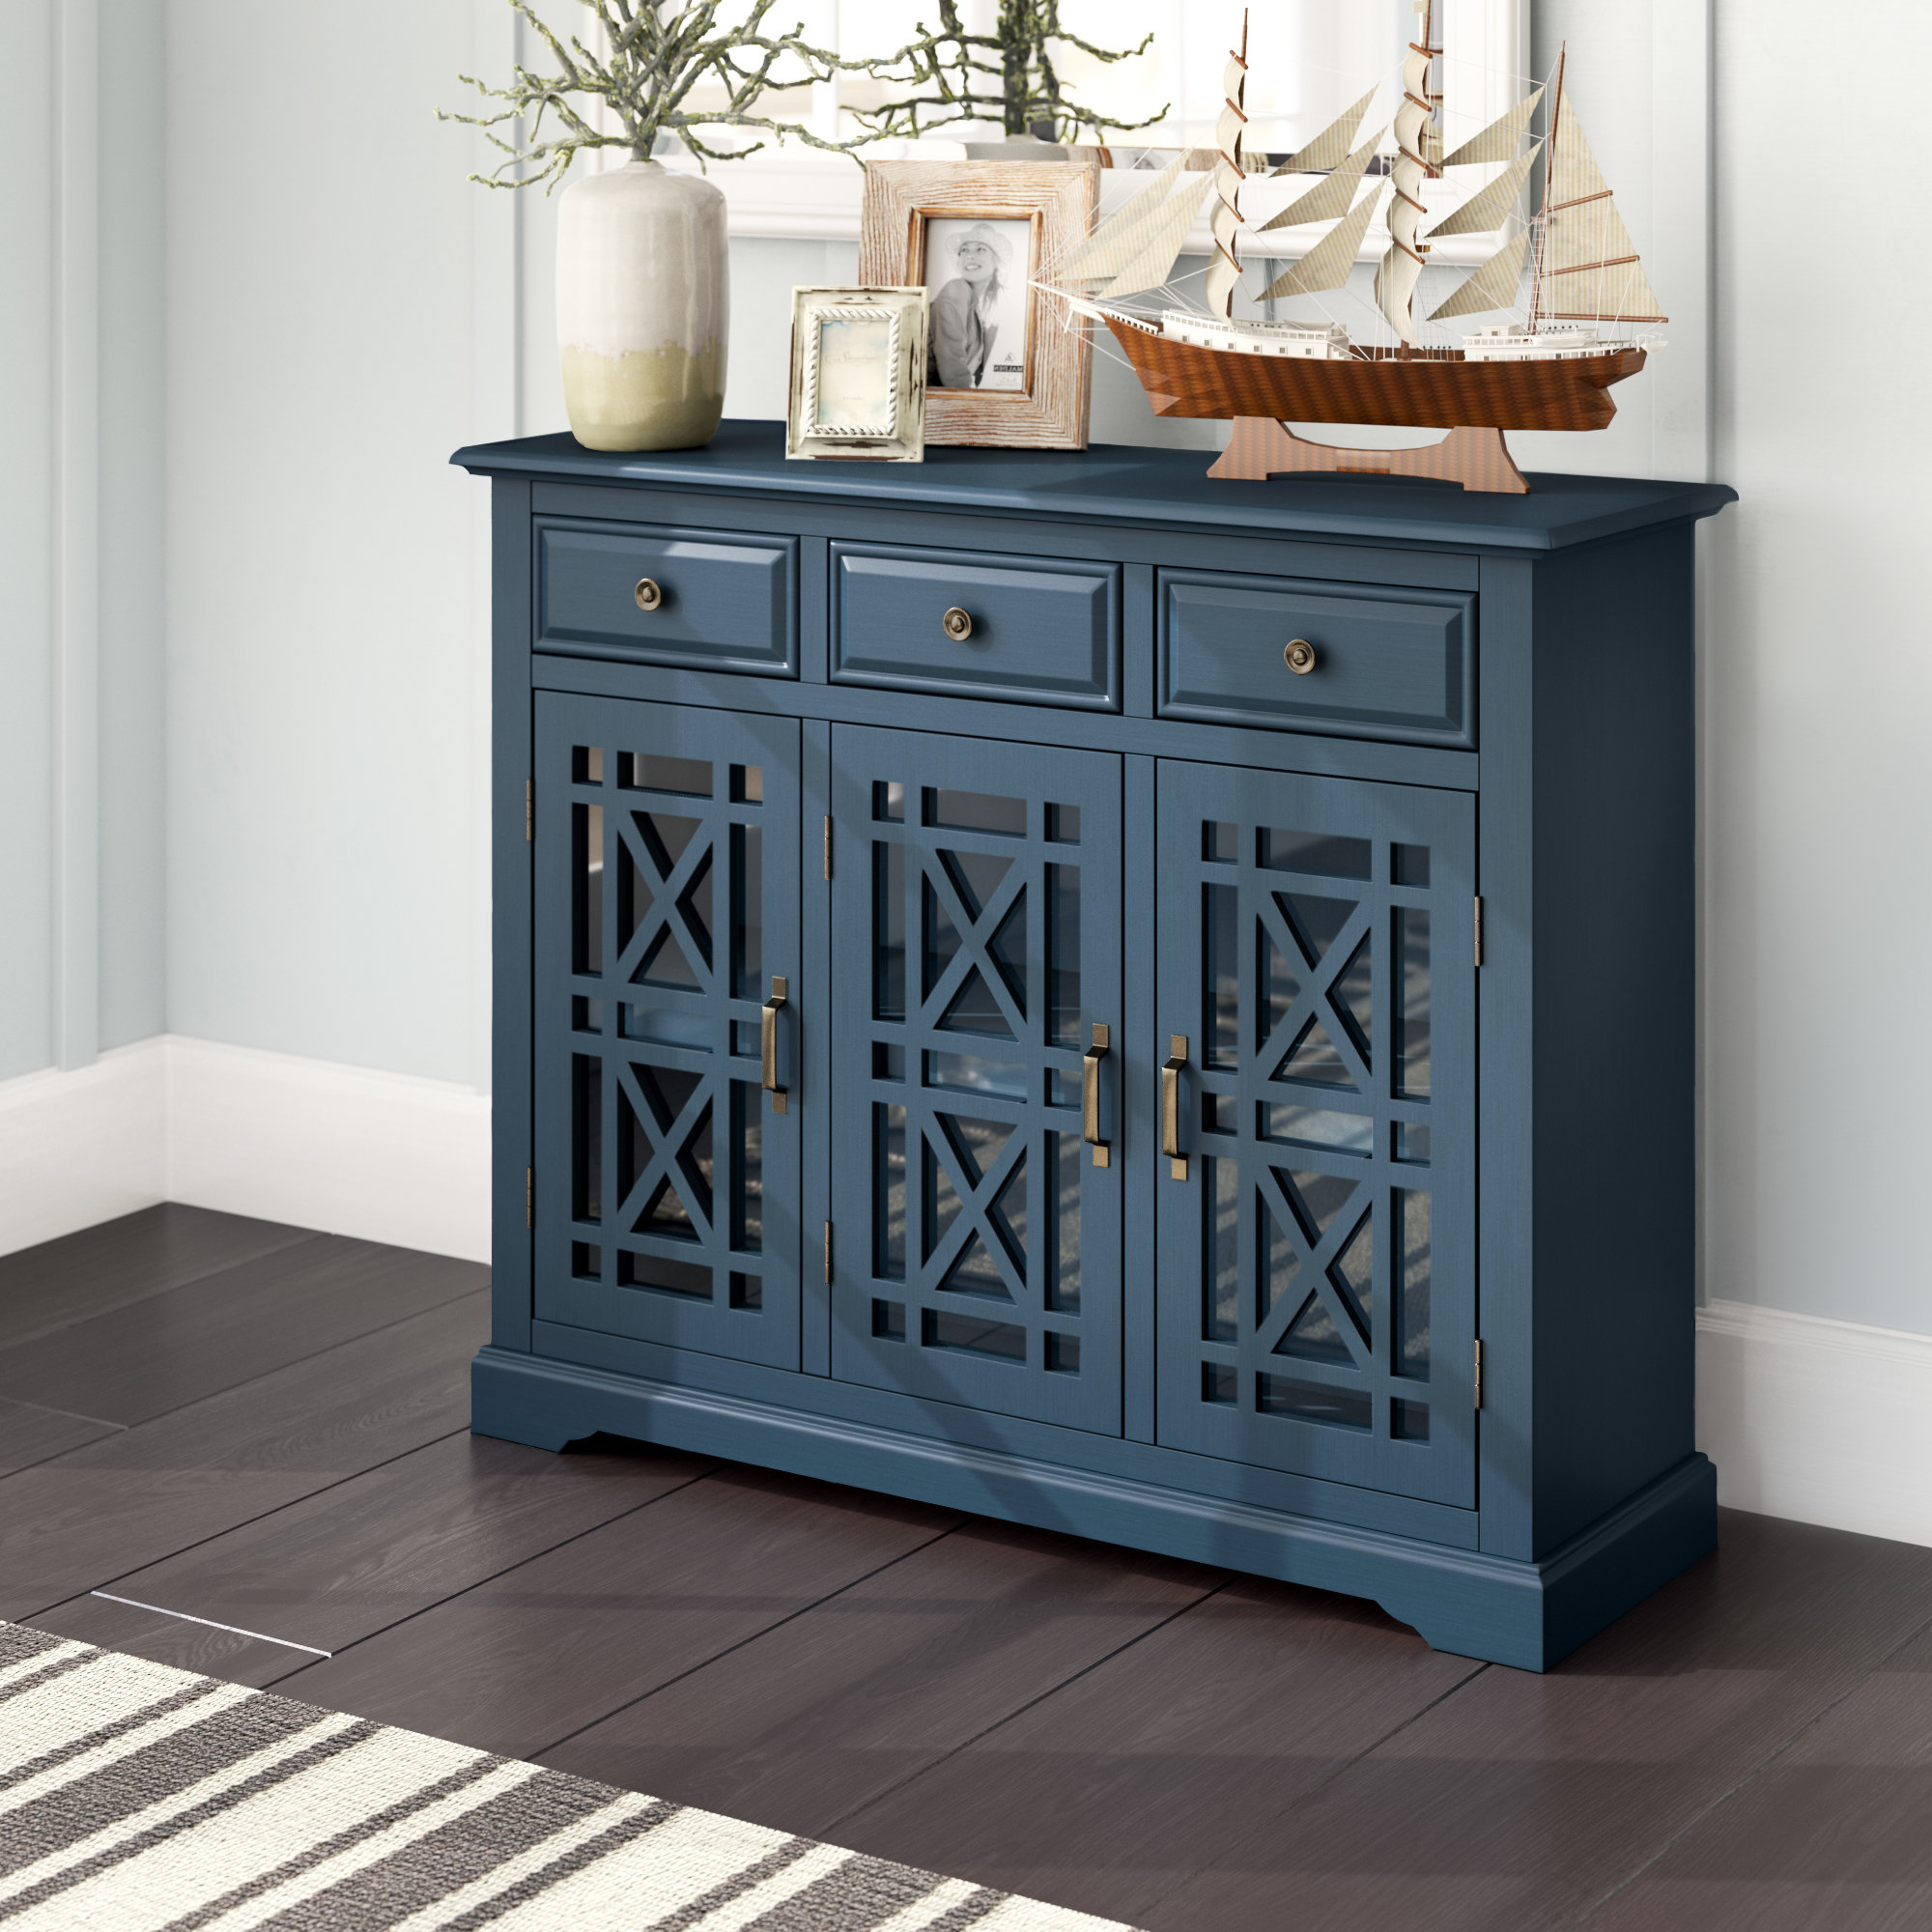 Sideboards & Buffet Tables You'll Love In 2019 | Wayfair Pertaining To Current Longley Sideboards (View 9 of 20)